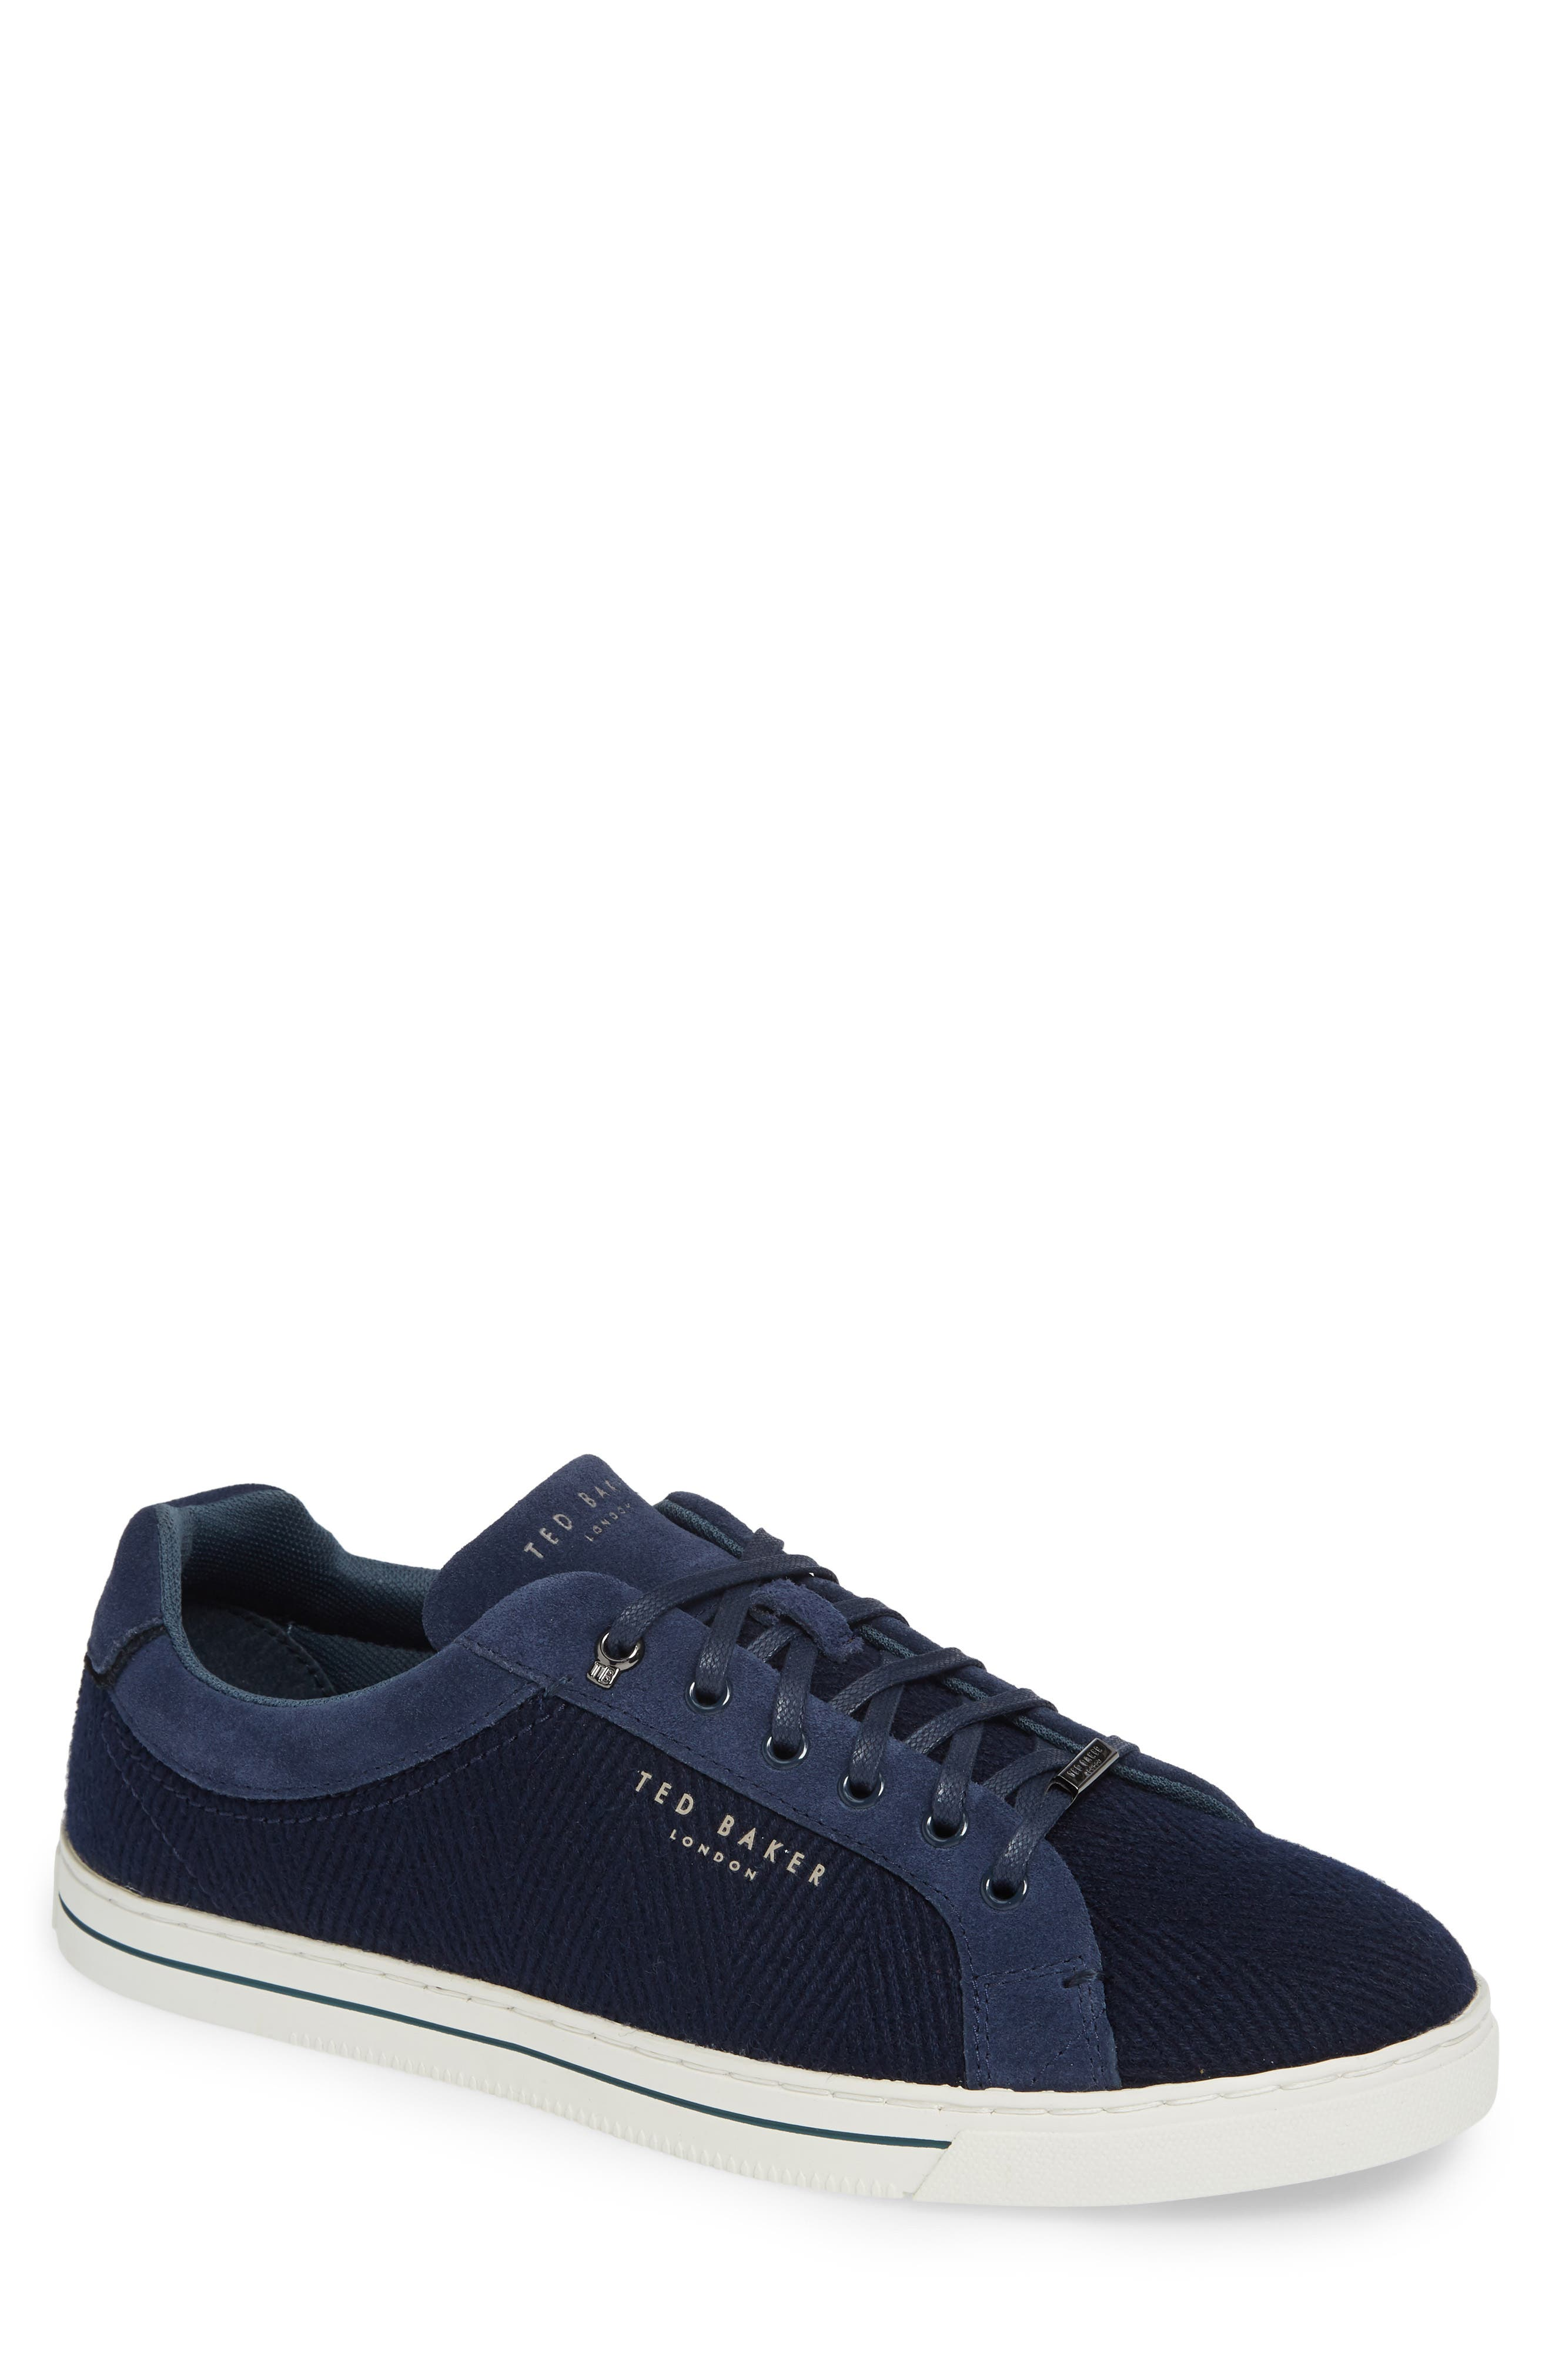 Ted Baker London Werill Sneaker, Blue